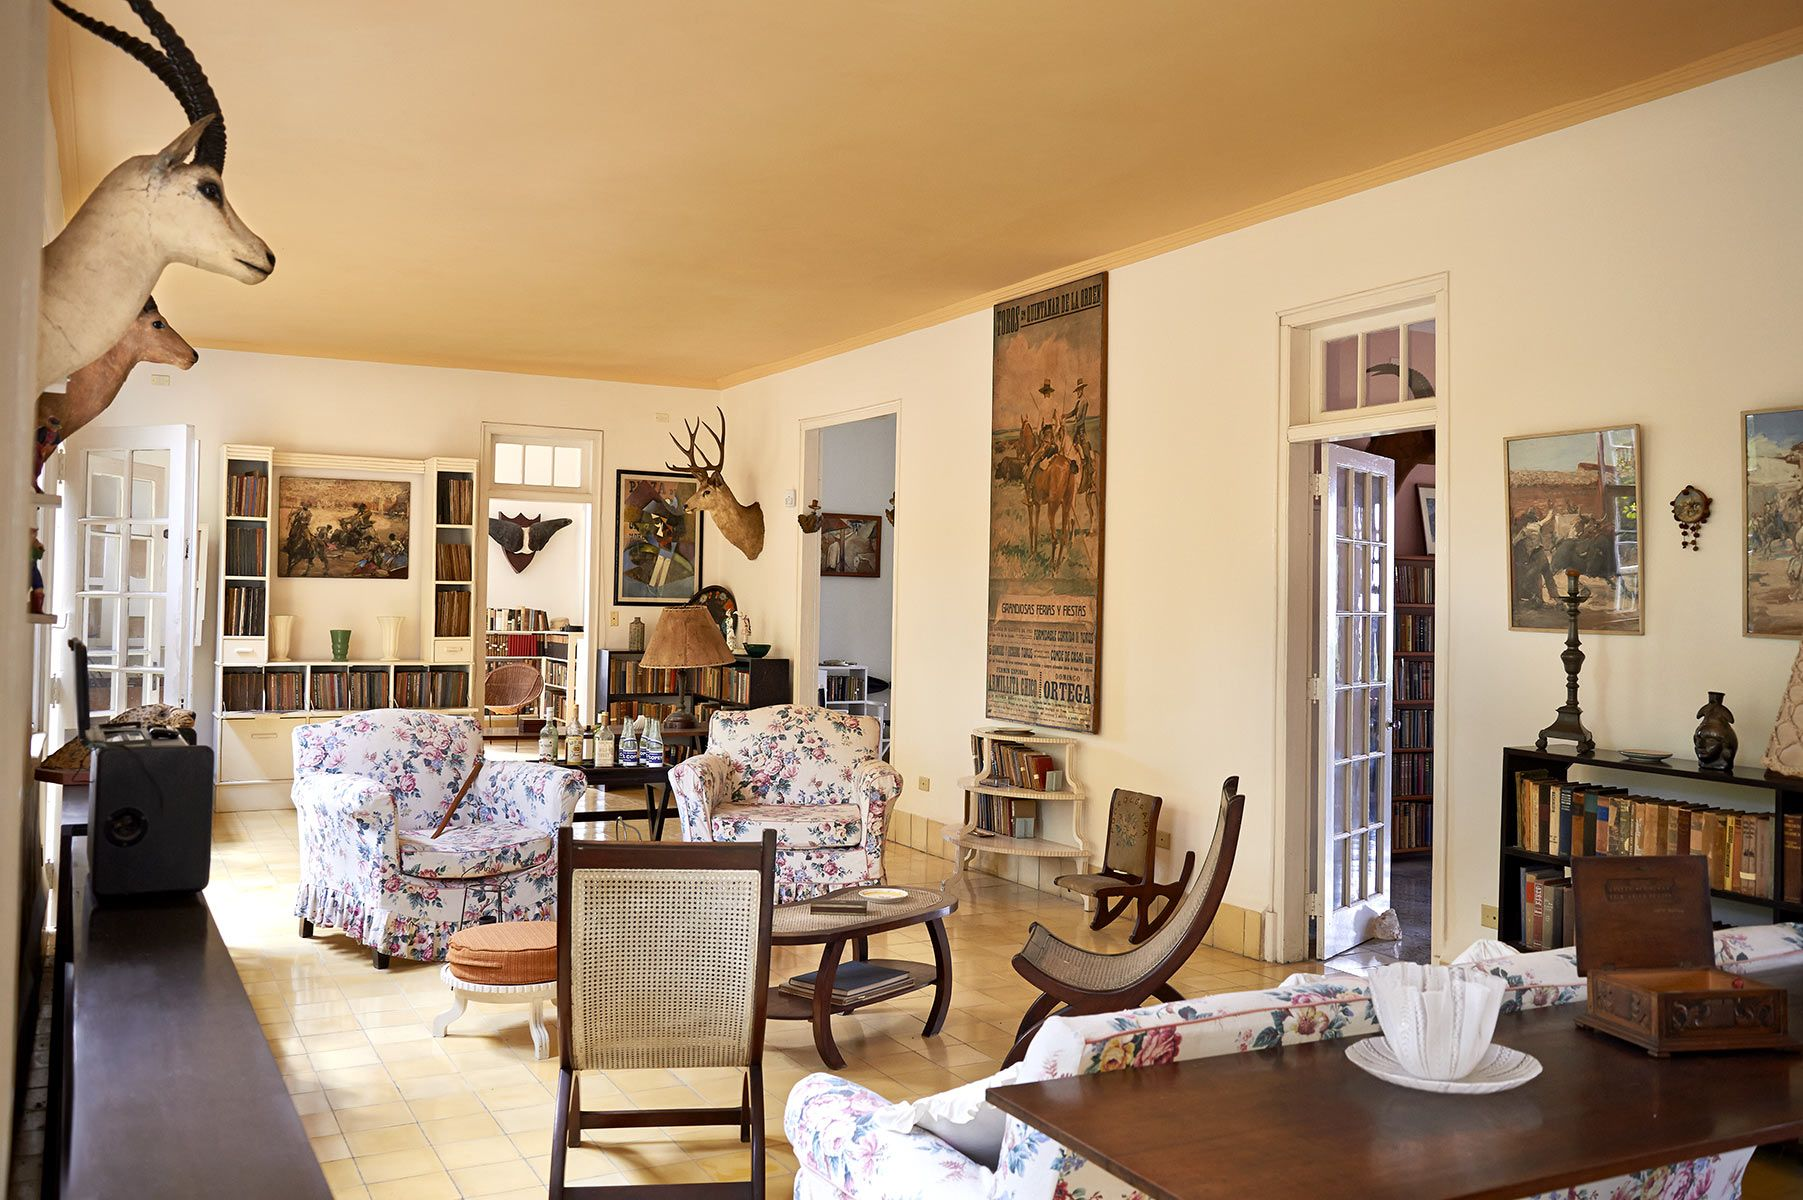 Hemingways's living room.FincaVigia,